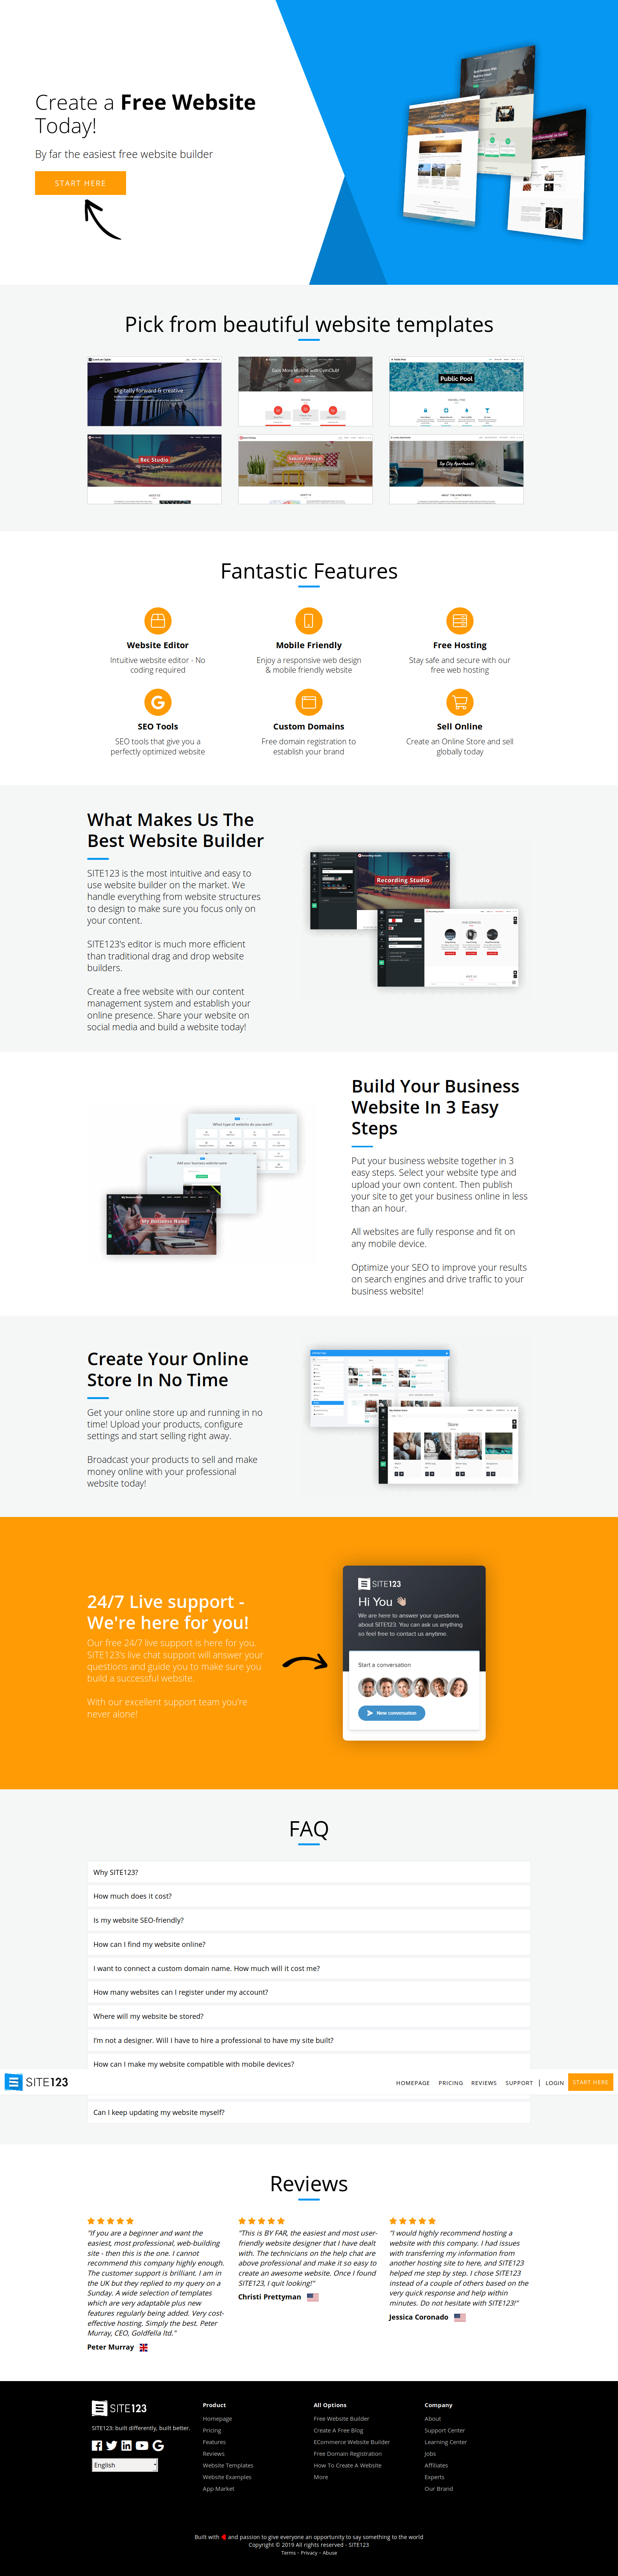 "10 Best"" Free Website Builders (Yes, Totally Free - No Payment)"